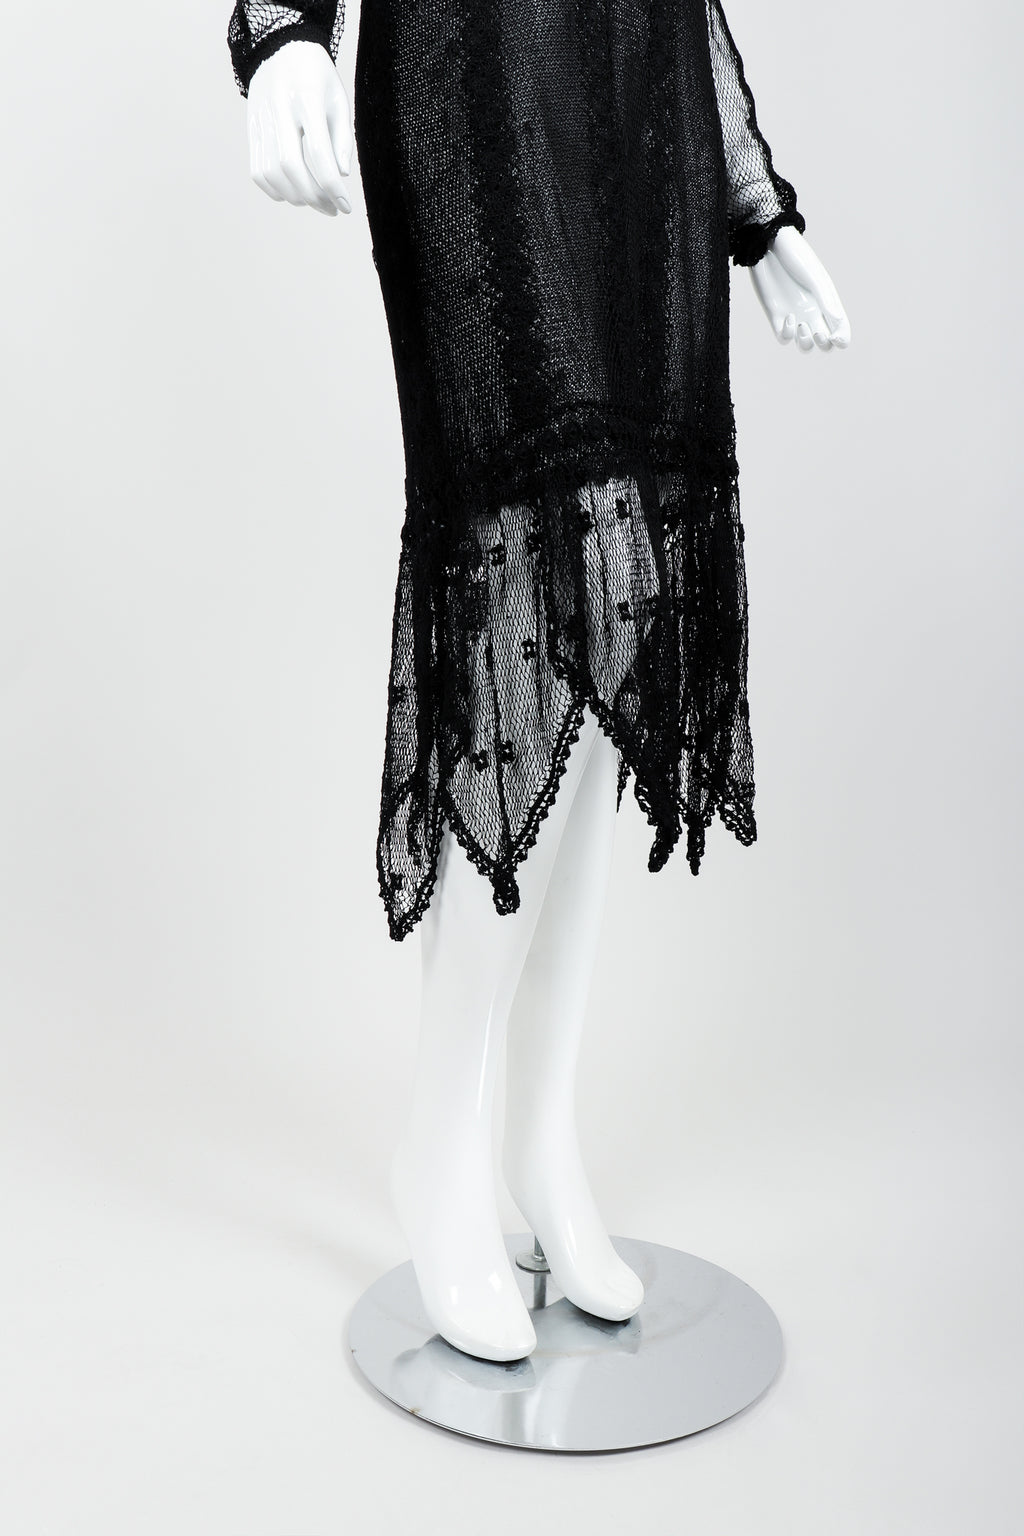 Vintage Lim's Sheer Crochet Lace Dress on Mannequin hem at Recess Los Angeles